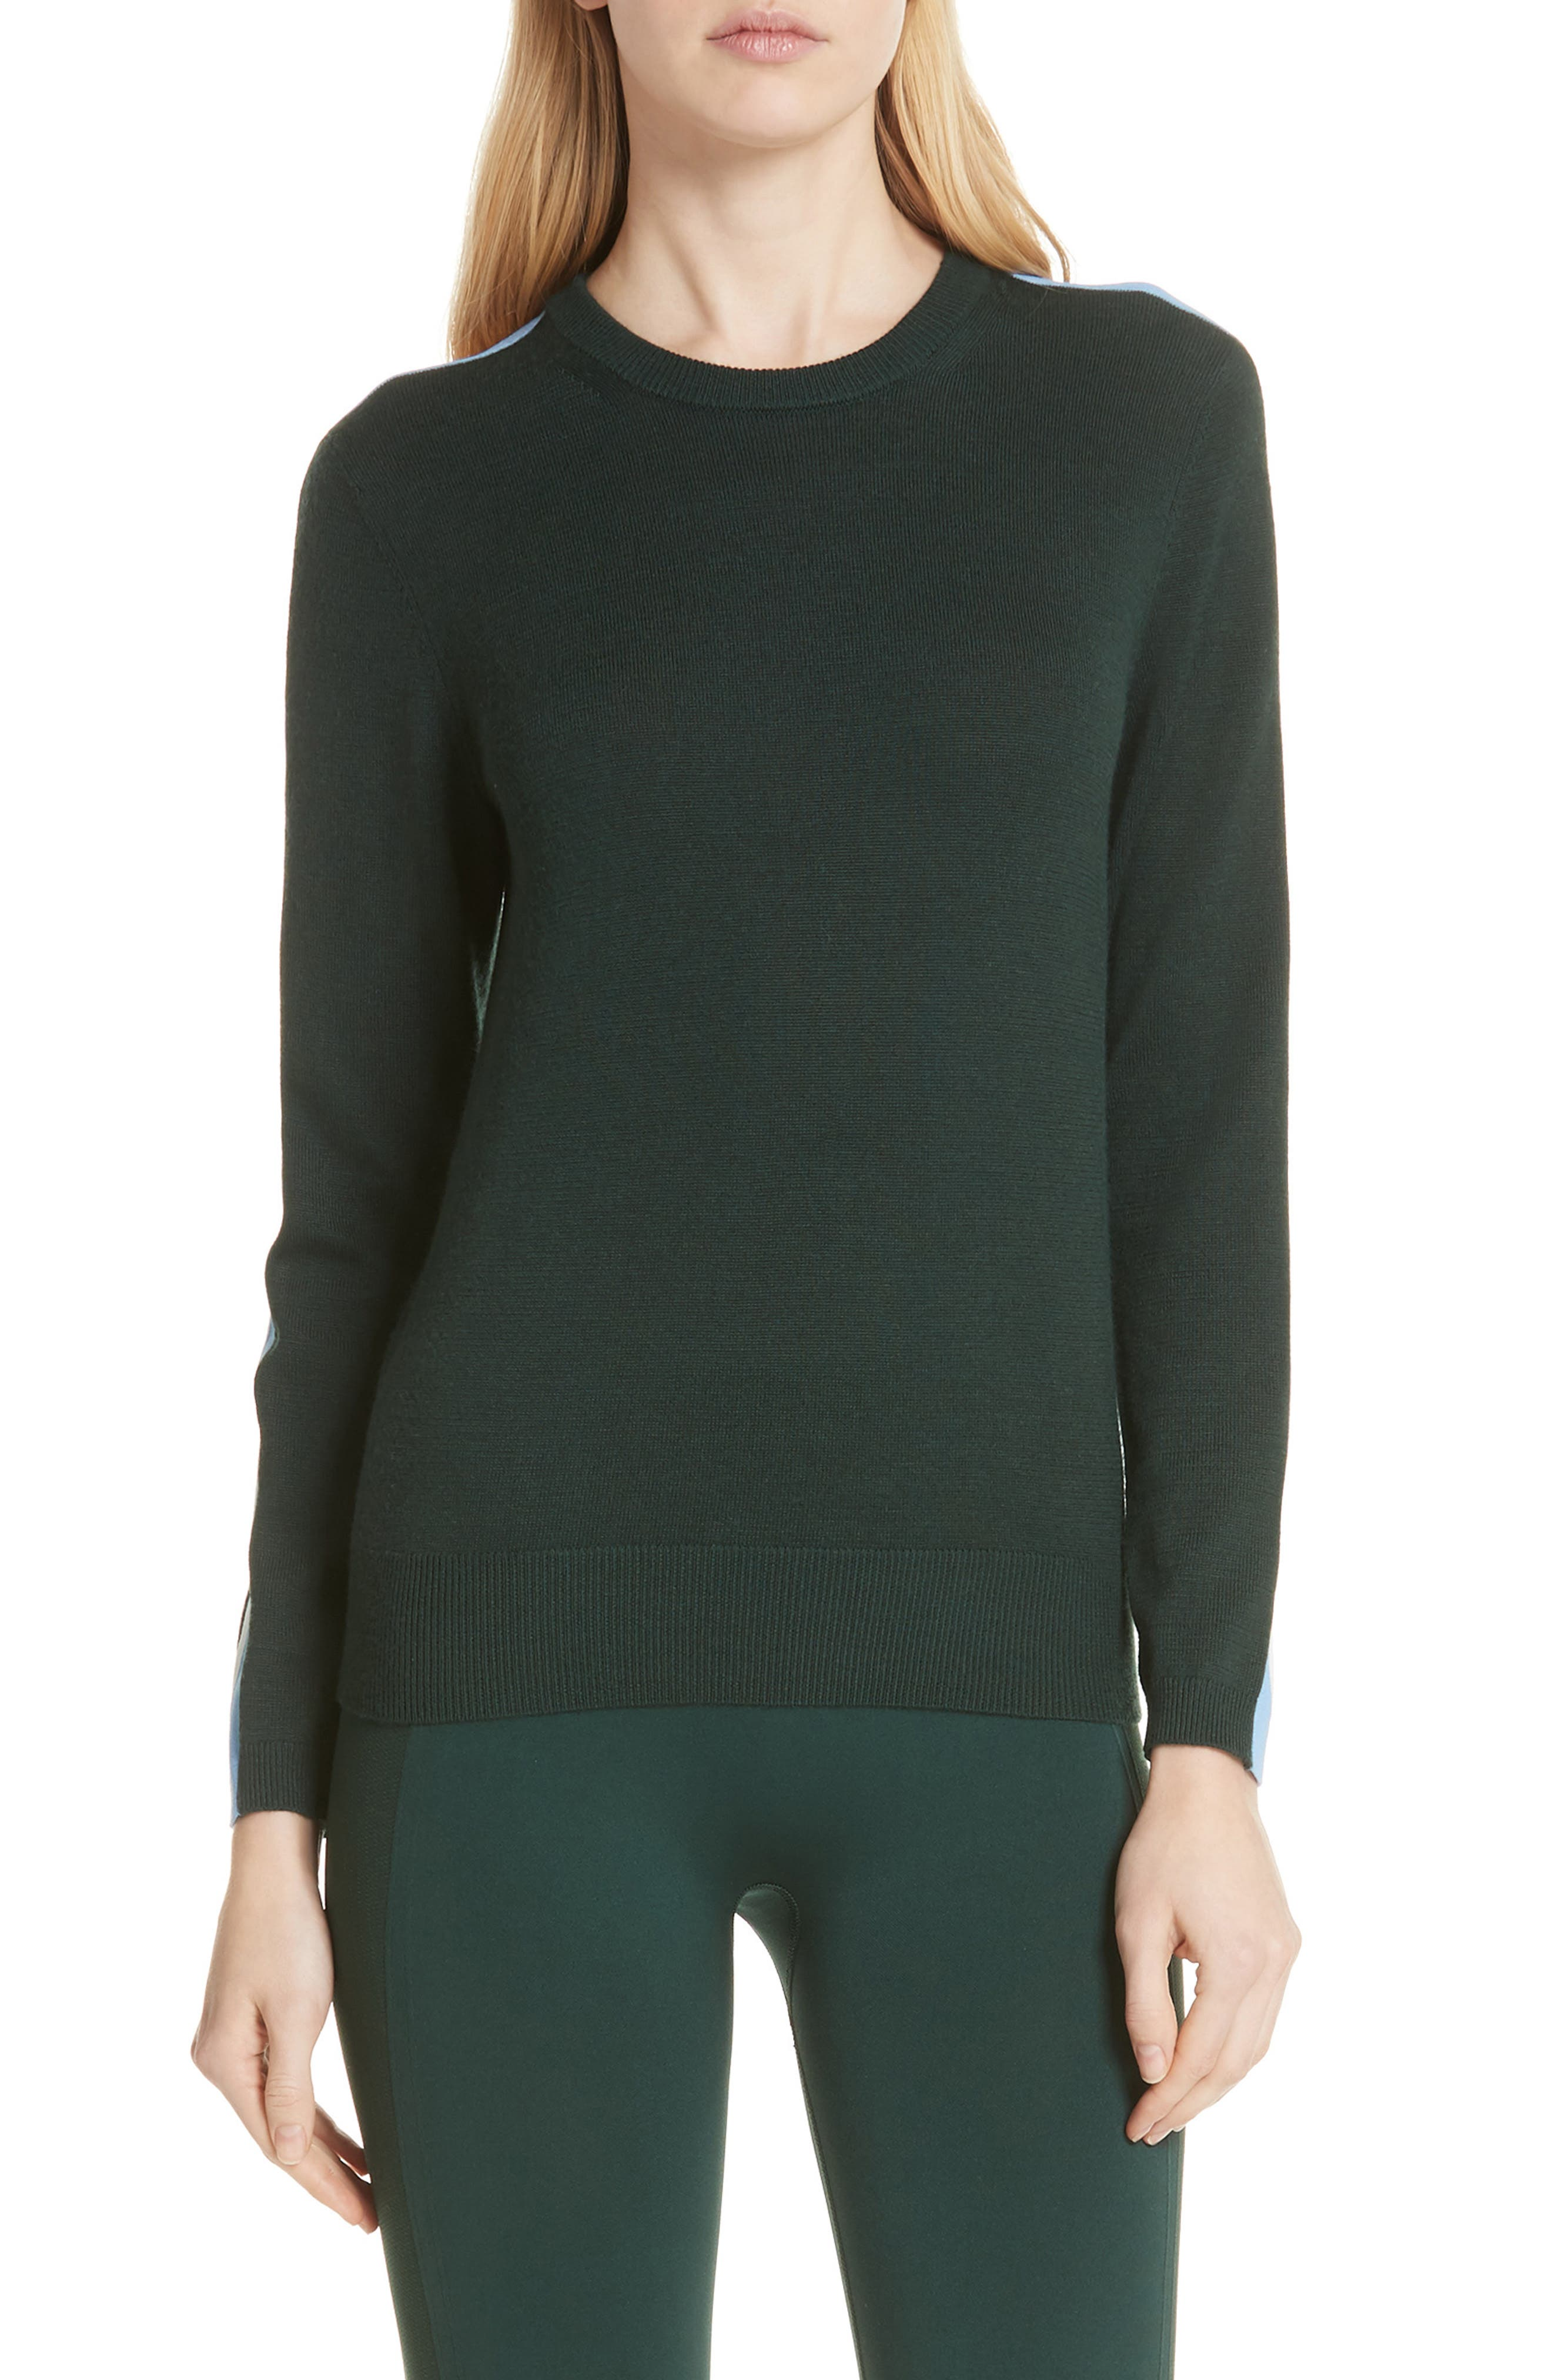 TORY SPORT Double-Striped Cashmere Performance Sweater in Conifer